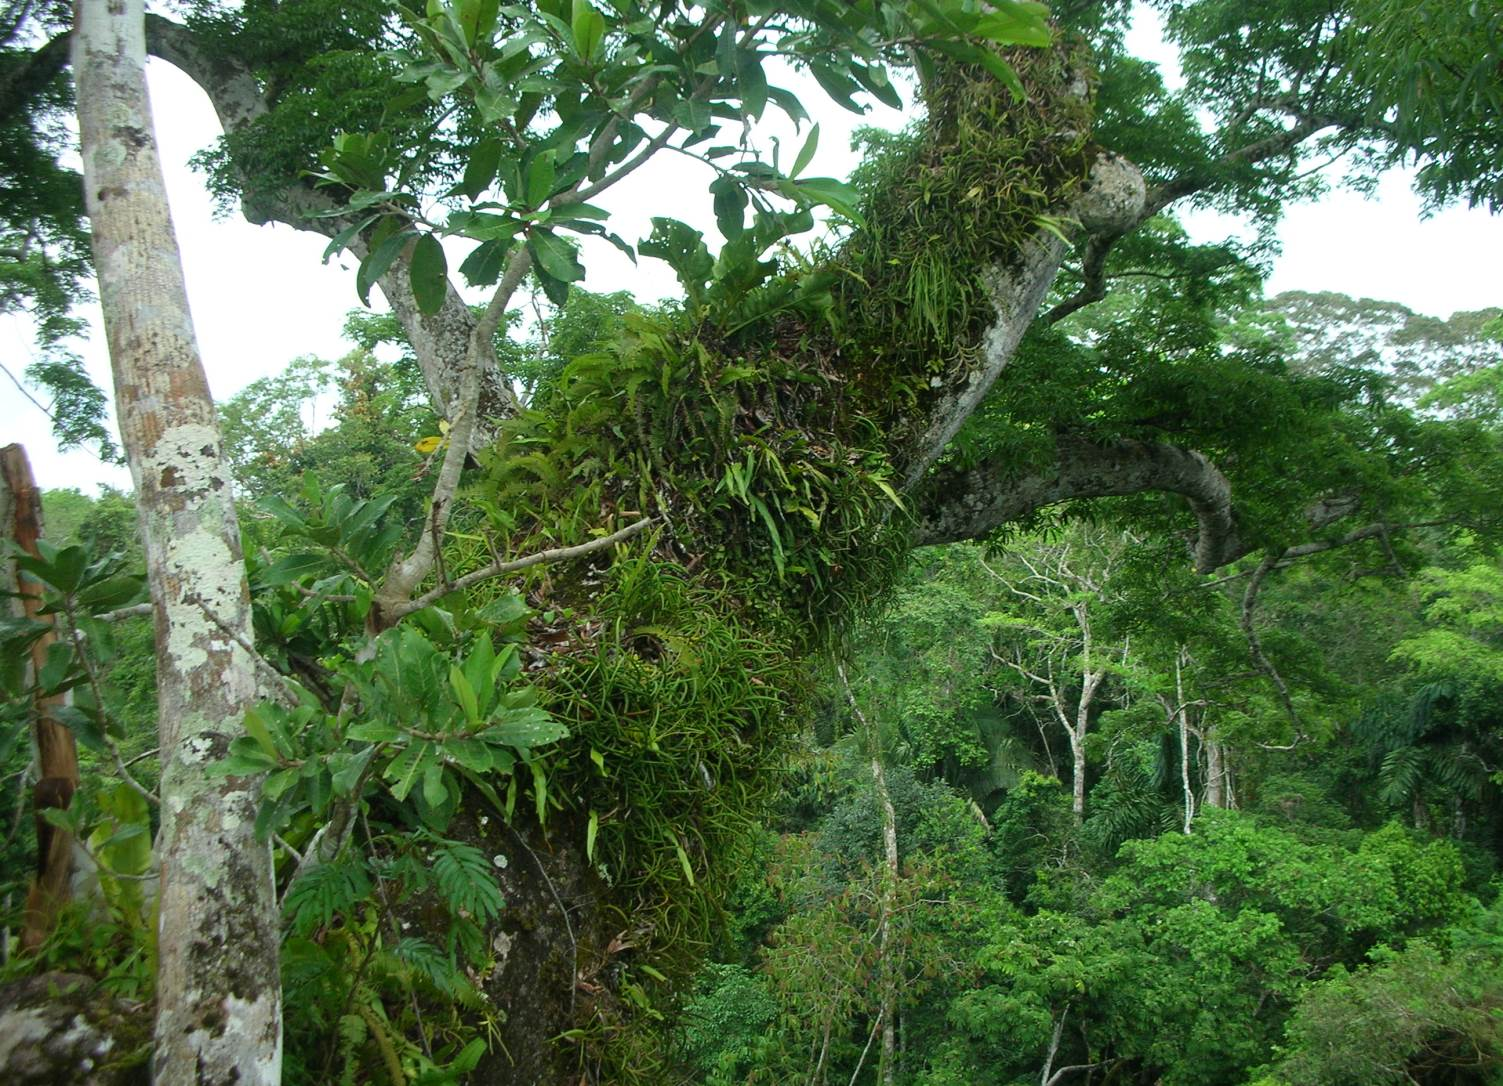 Epiphytes decorate the branch of a canopy emergent tree in the tropical broadleaf forest of Madre de Dios, Peru.